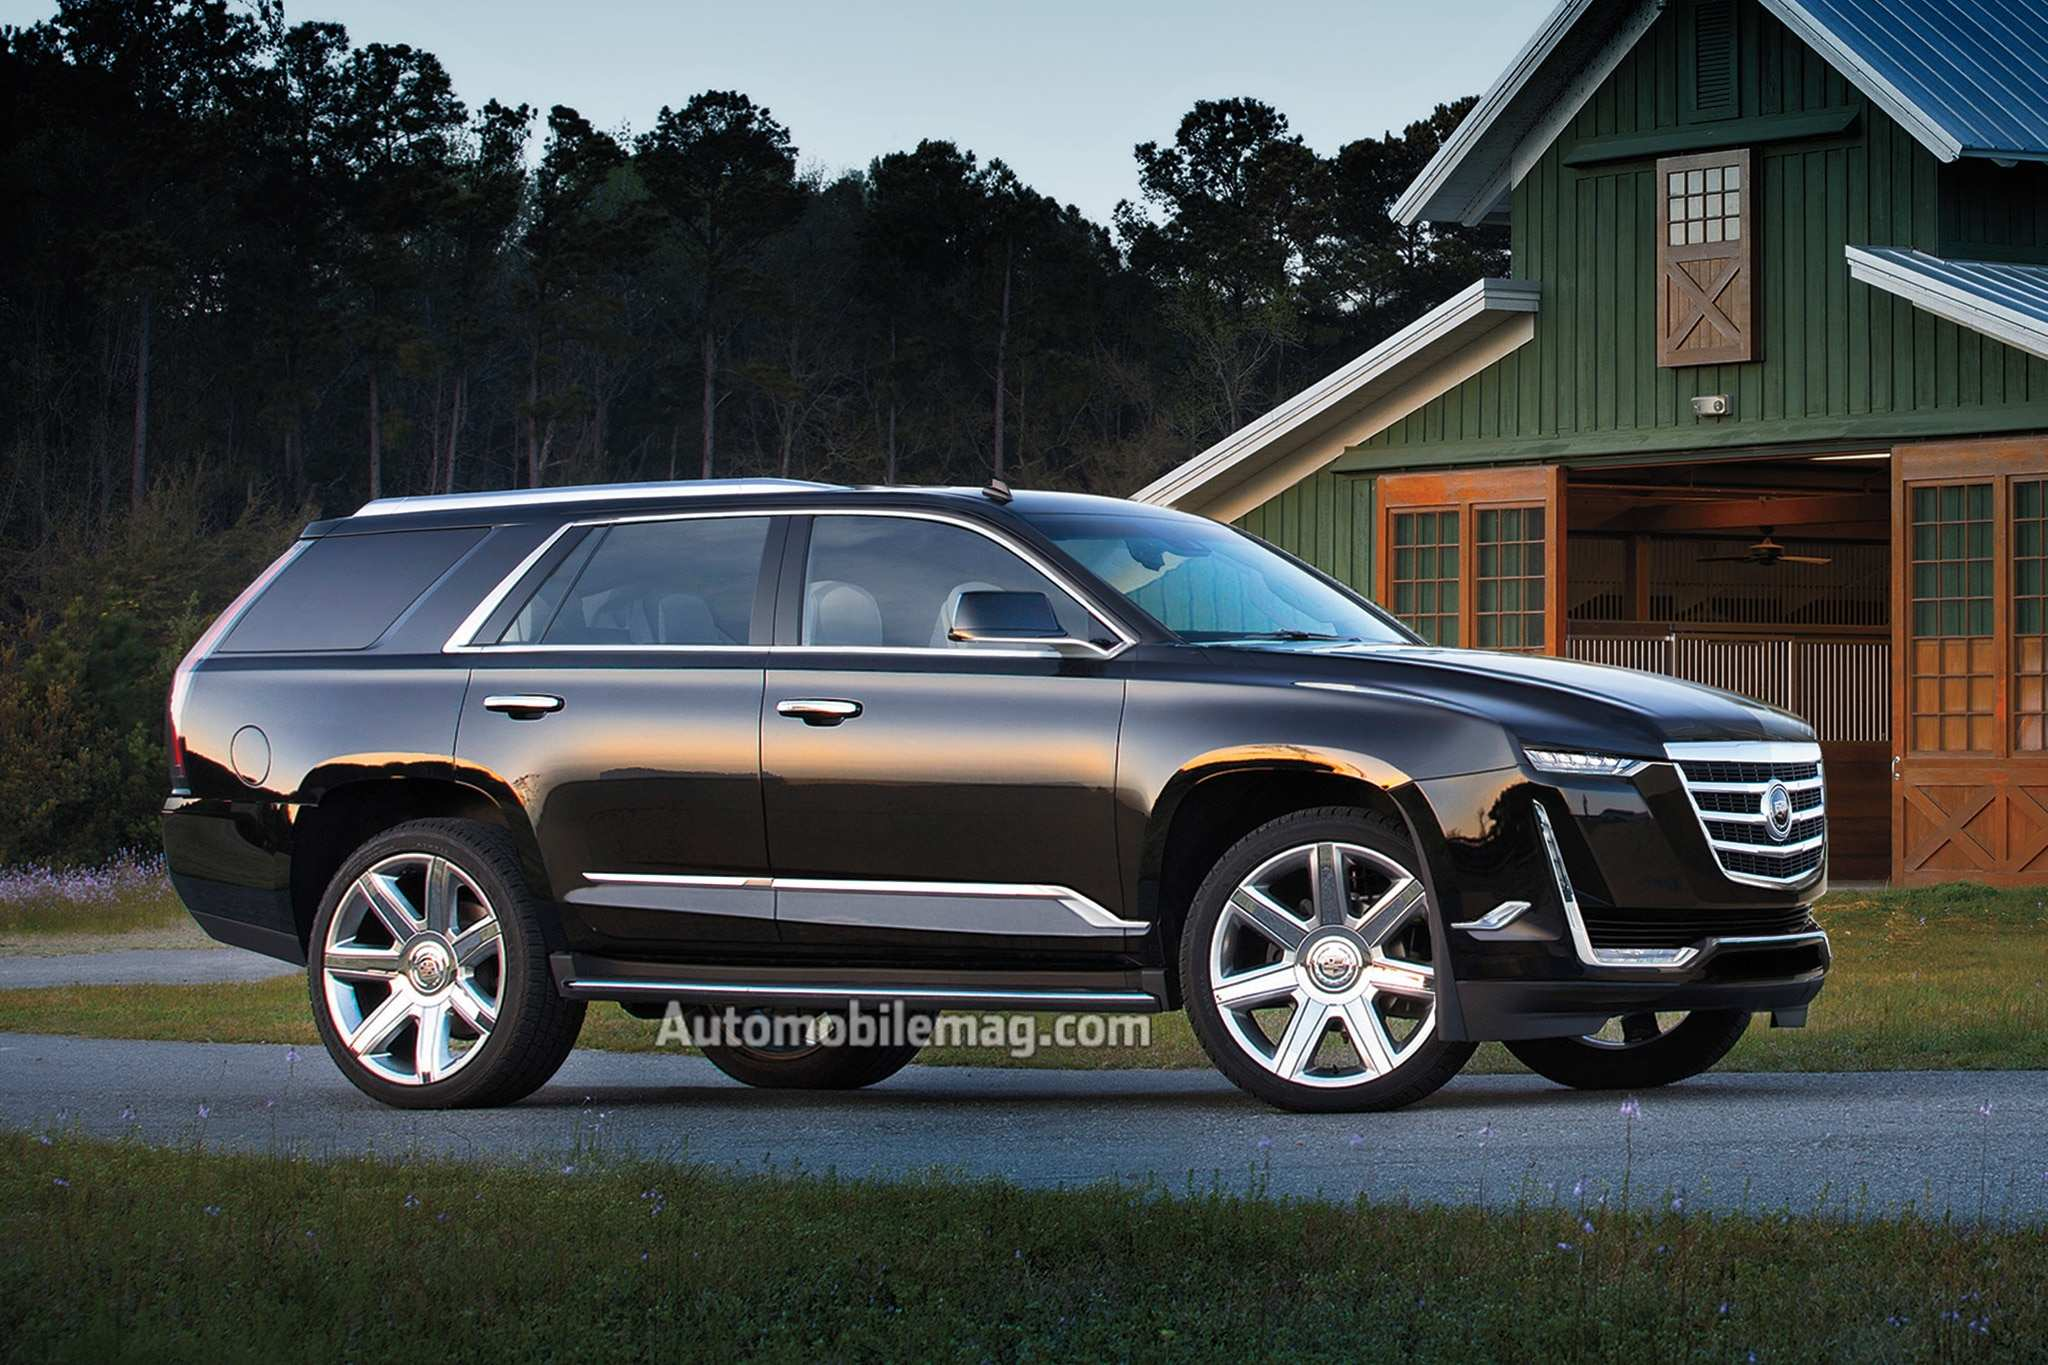 15 New When Can I Order A 2020 Cadillac Escalade Exterior for When Can I Order A 2020 Cadillac Escalade